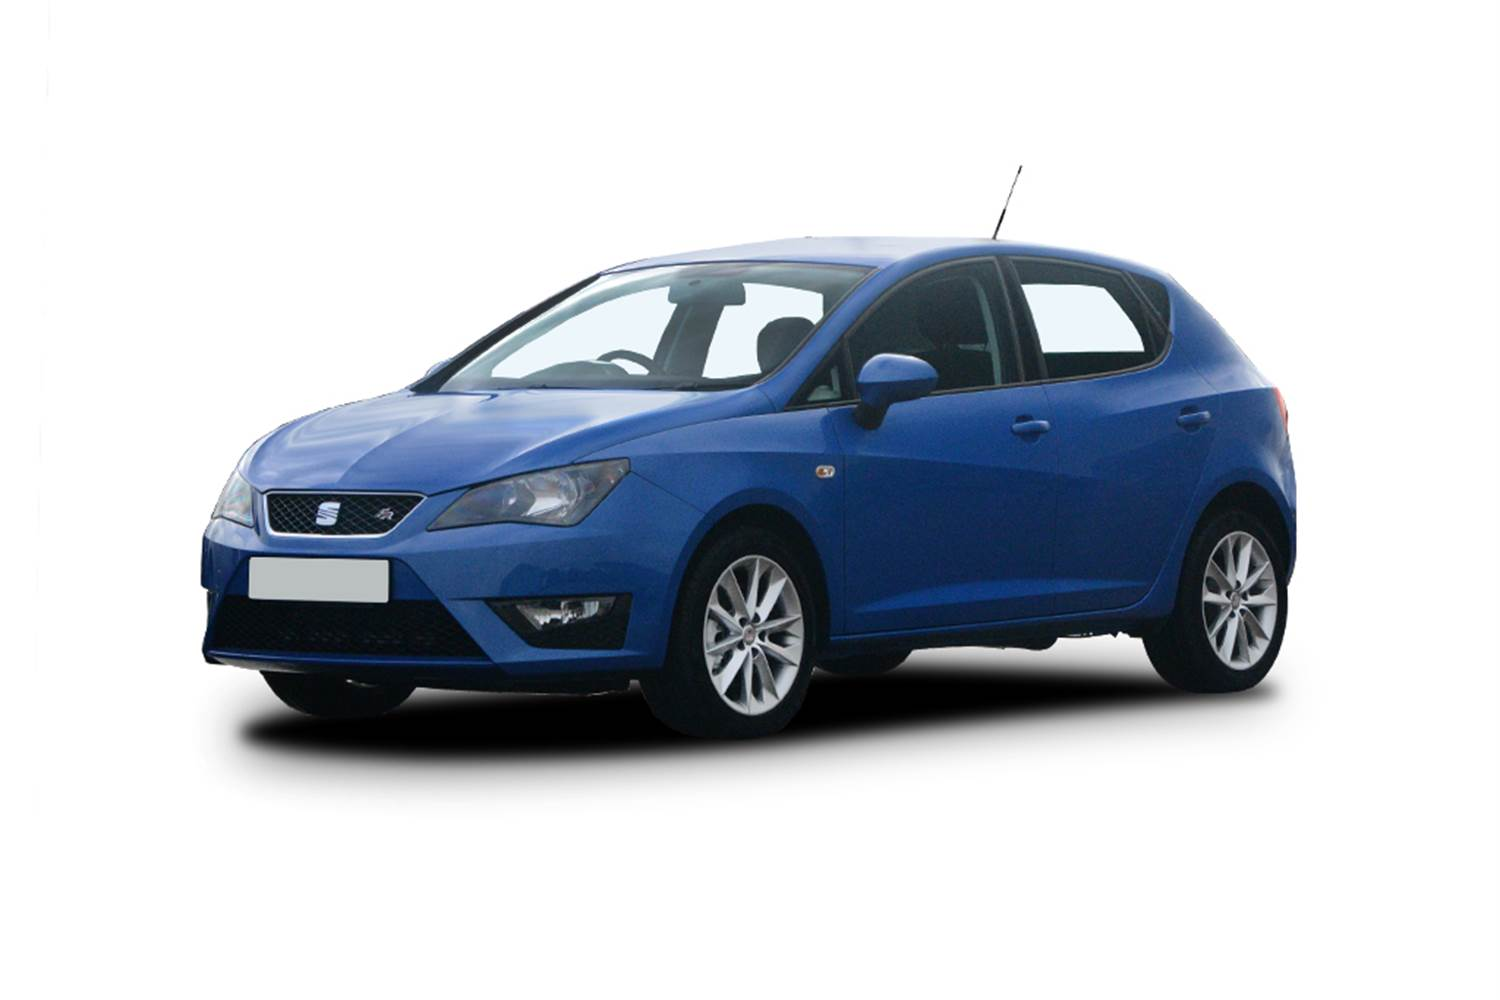 2013 seat ibiza hatchback pictures information and specs auto. Black Bedroom Furniture Sets. Home Design Ideas